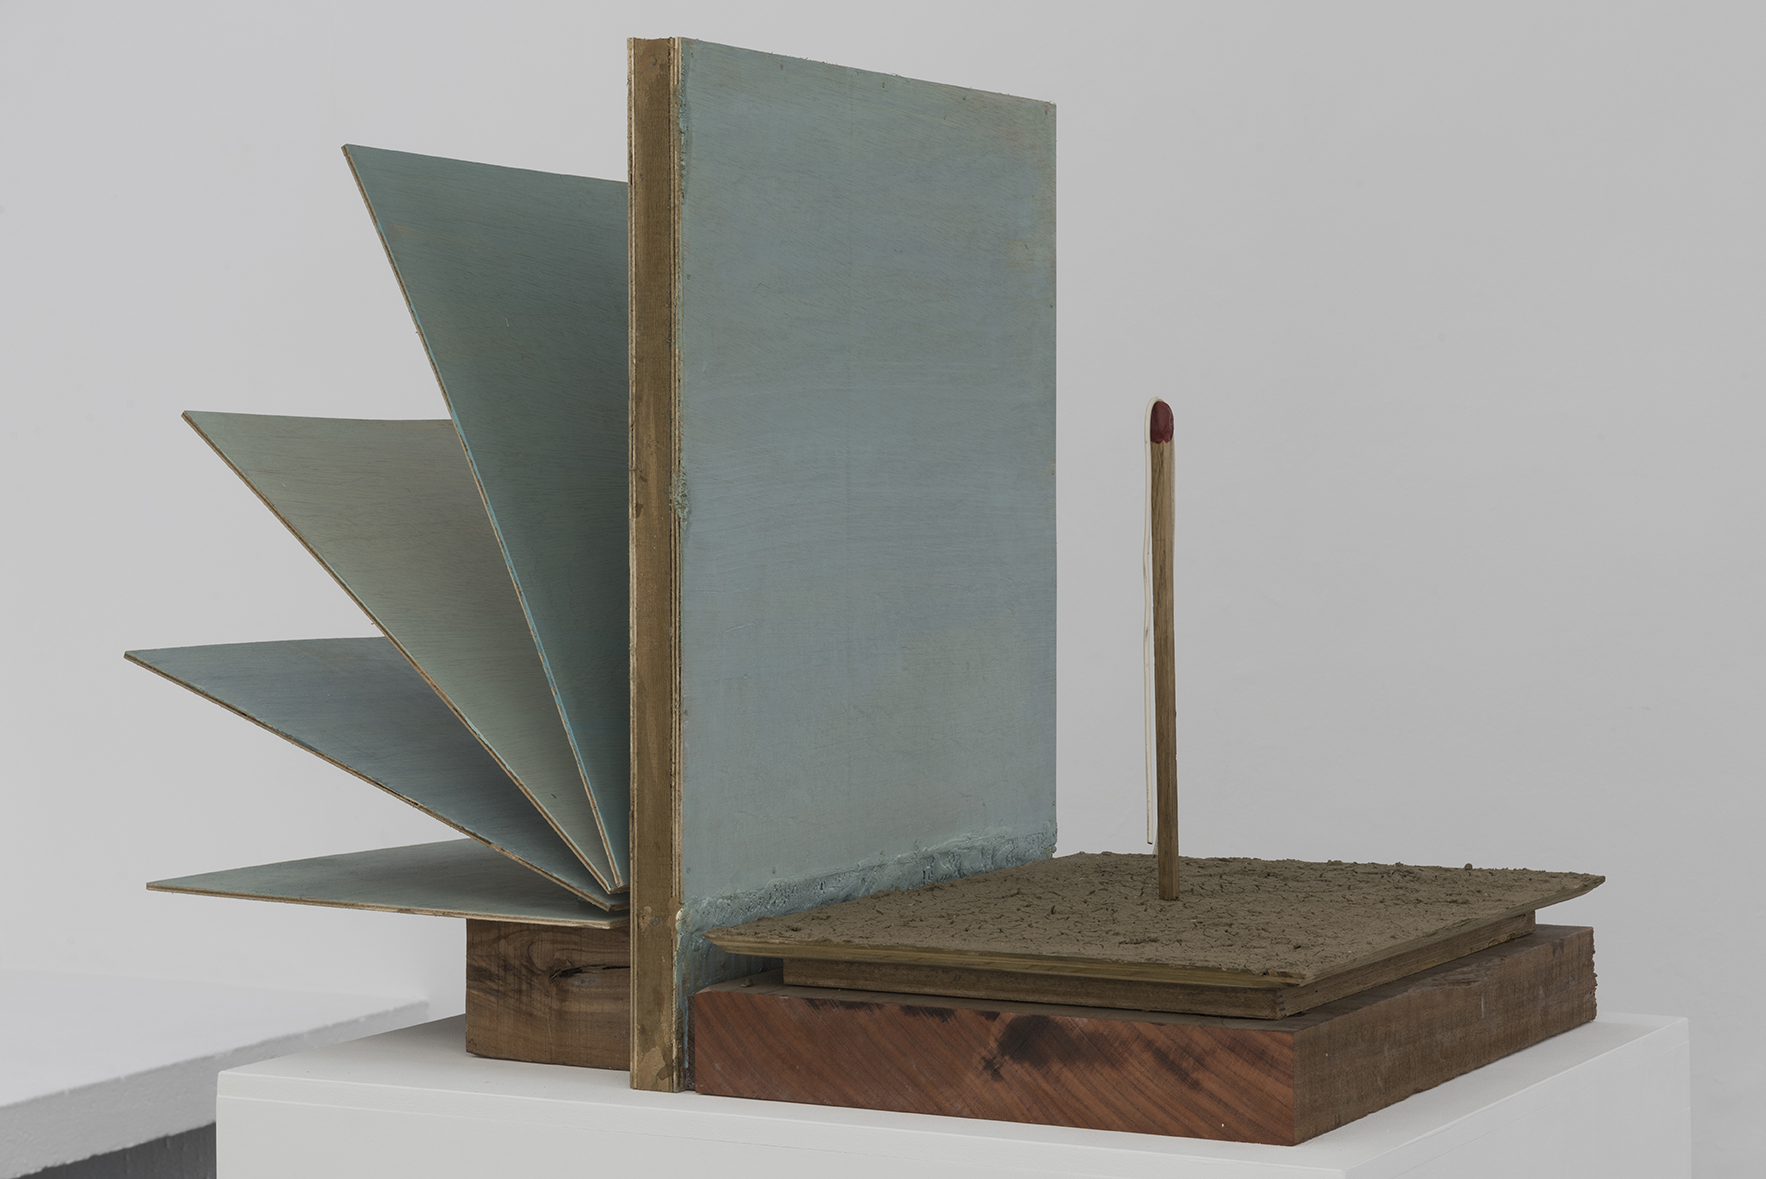 MARK MANDERS.Landscape with Match and Rope, 2014 | A Drawing Placed Between Two Objects (with Mark Manders) | ProjecteSD